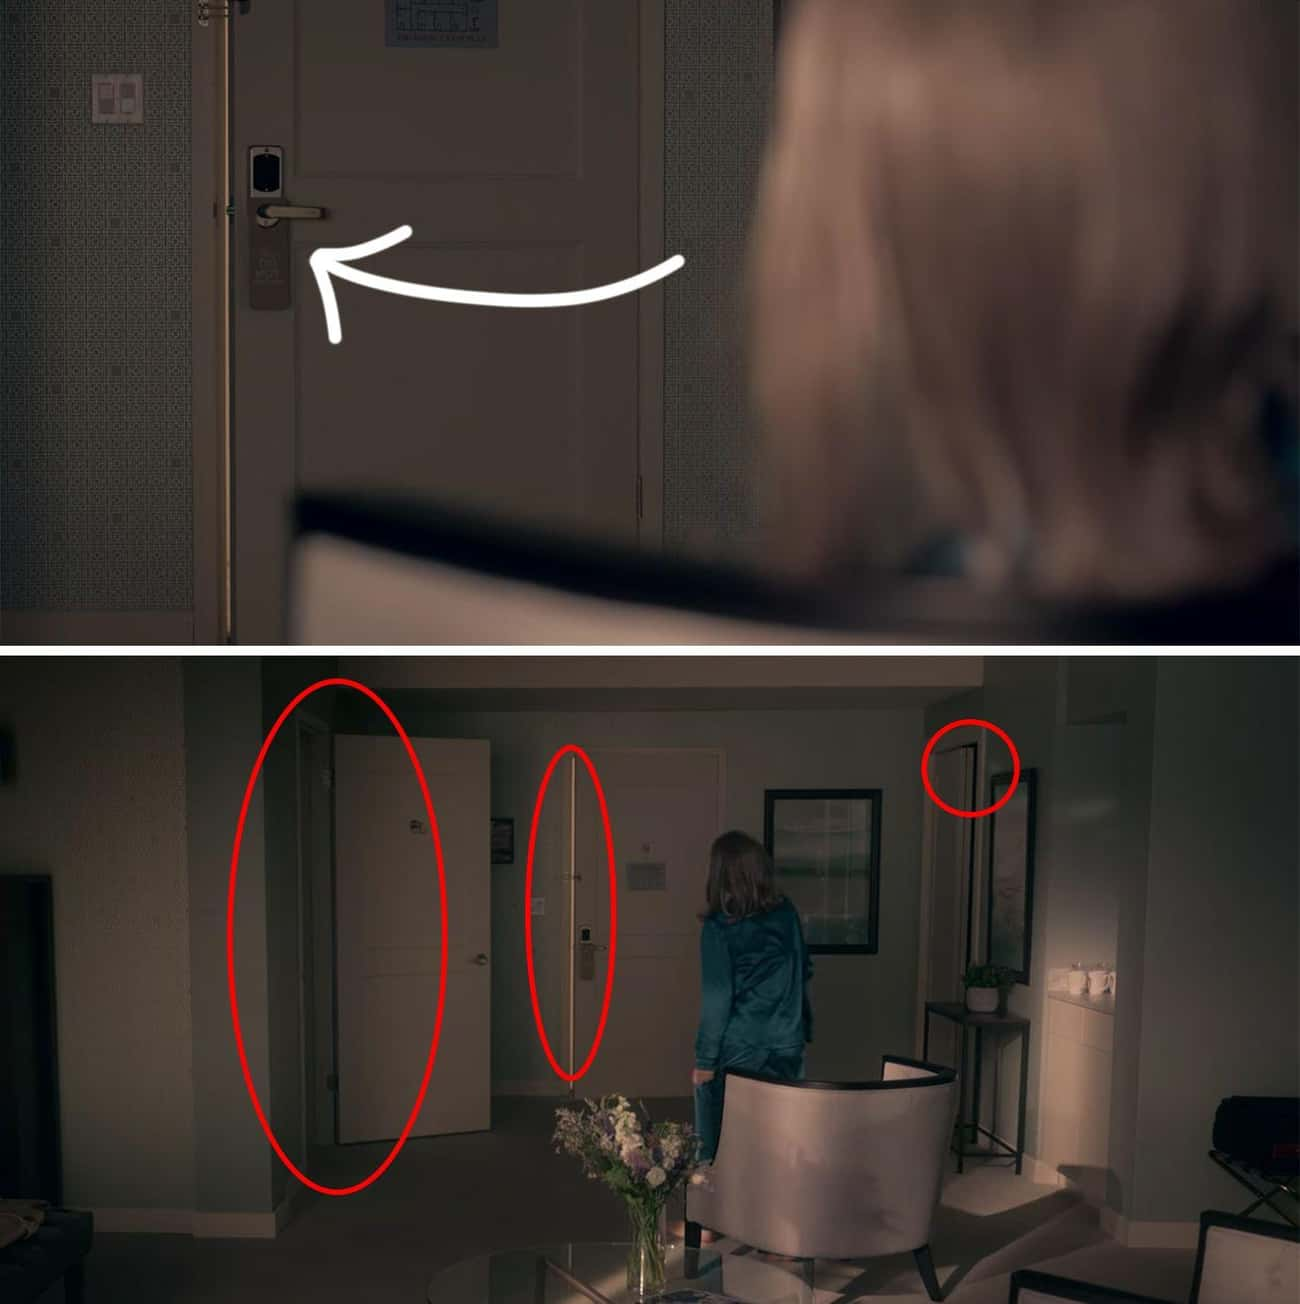 The Woman (Jamie) Keeps The Doors Open - Jamie Is Waiting For Dani To Come Back (Circles Back From The Ending)